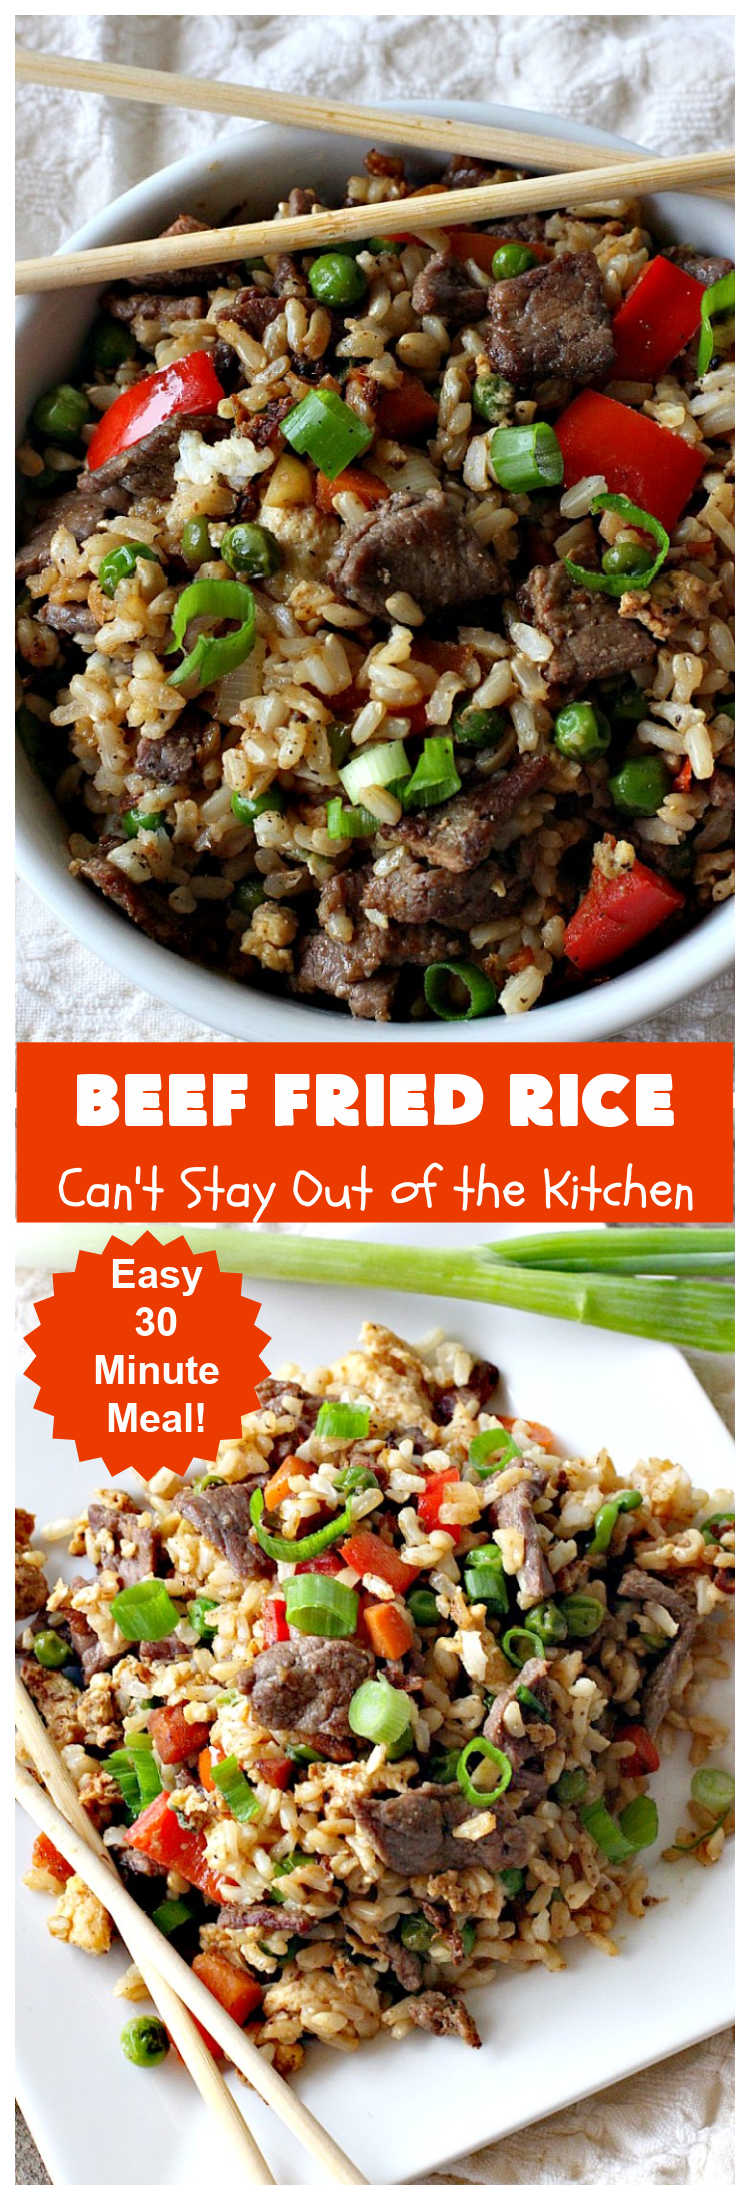 Beef Fried Rice | Can't Stay Out of the Kitchen | easy 30-minute meal! fabulous #FriedRice with #beef & lots of #veggies. Perfect for #FreezerMeals. #BeefFriedRice